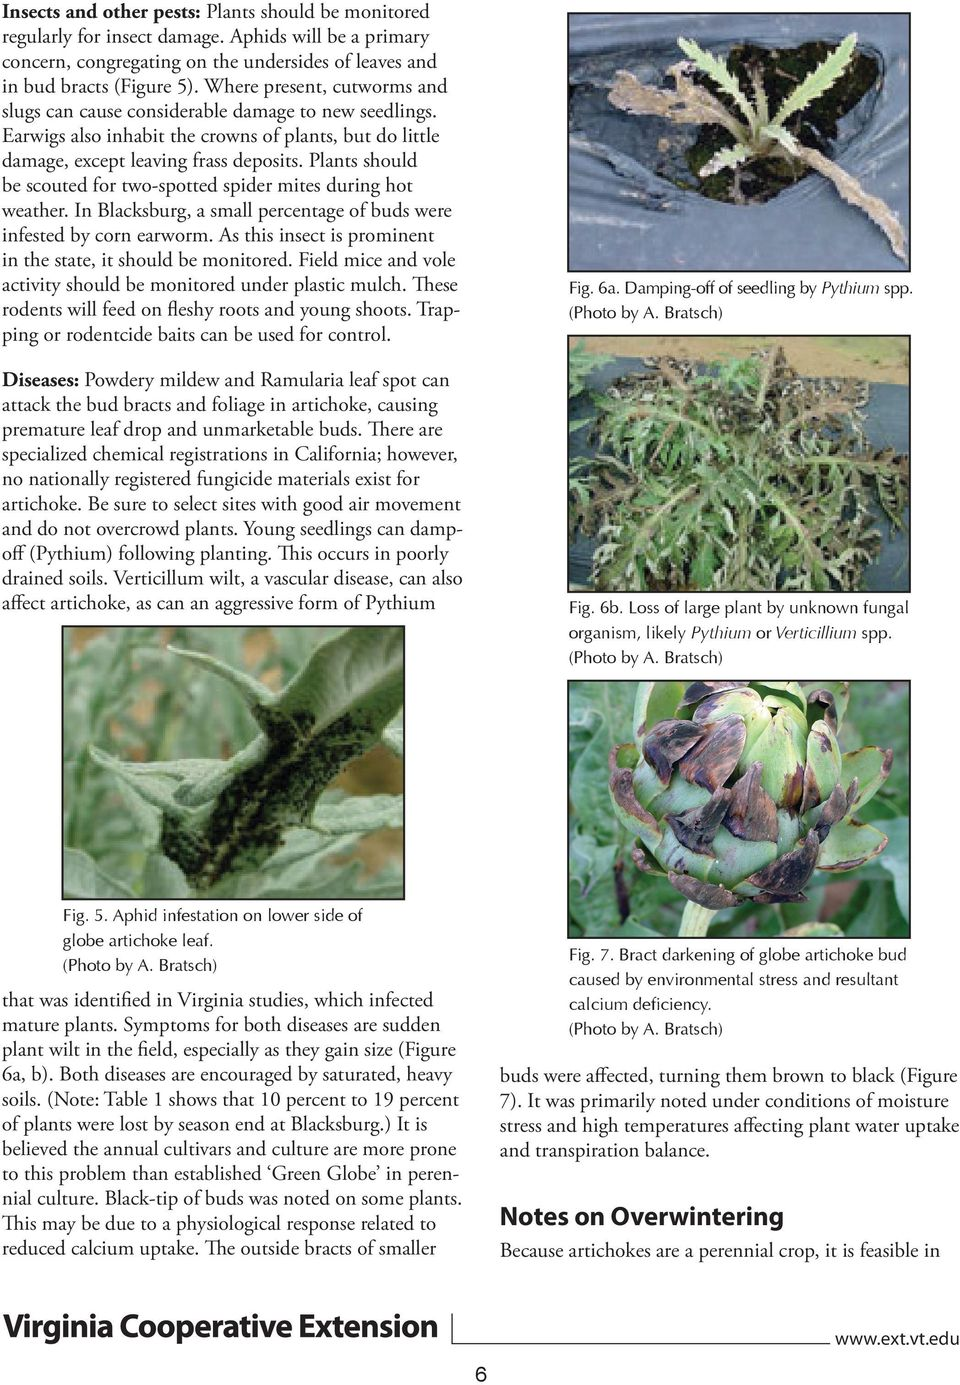 Plants should be scouted for two-spotted spider mites during hot weather. In Blacksburg, a small percentage of buds were infested by corn earworm.